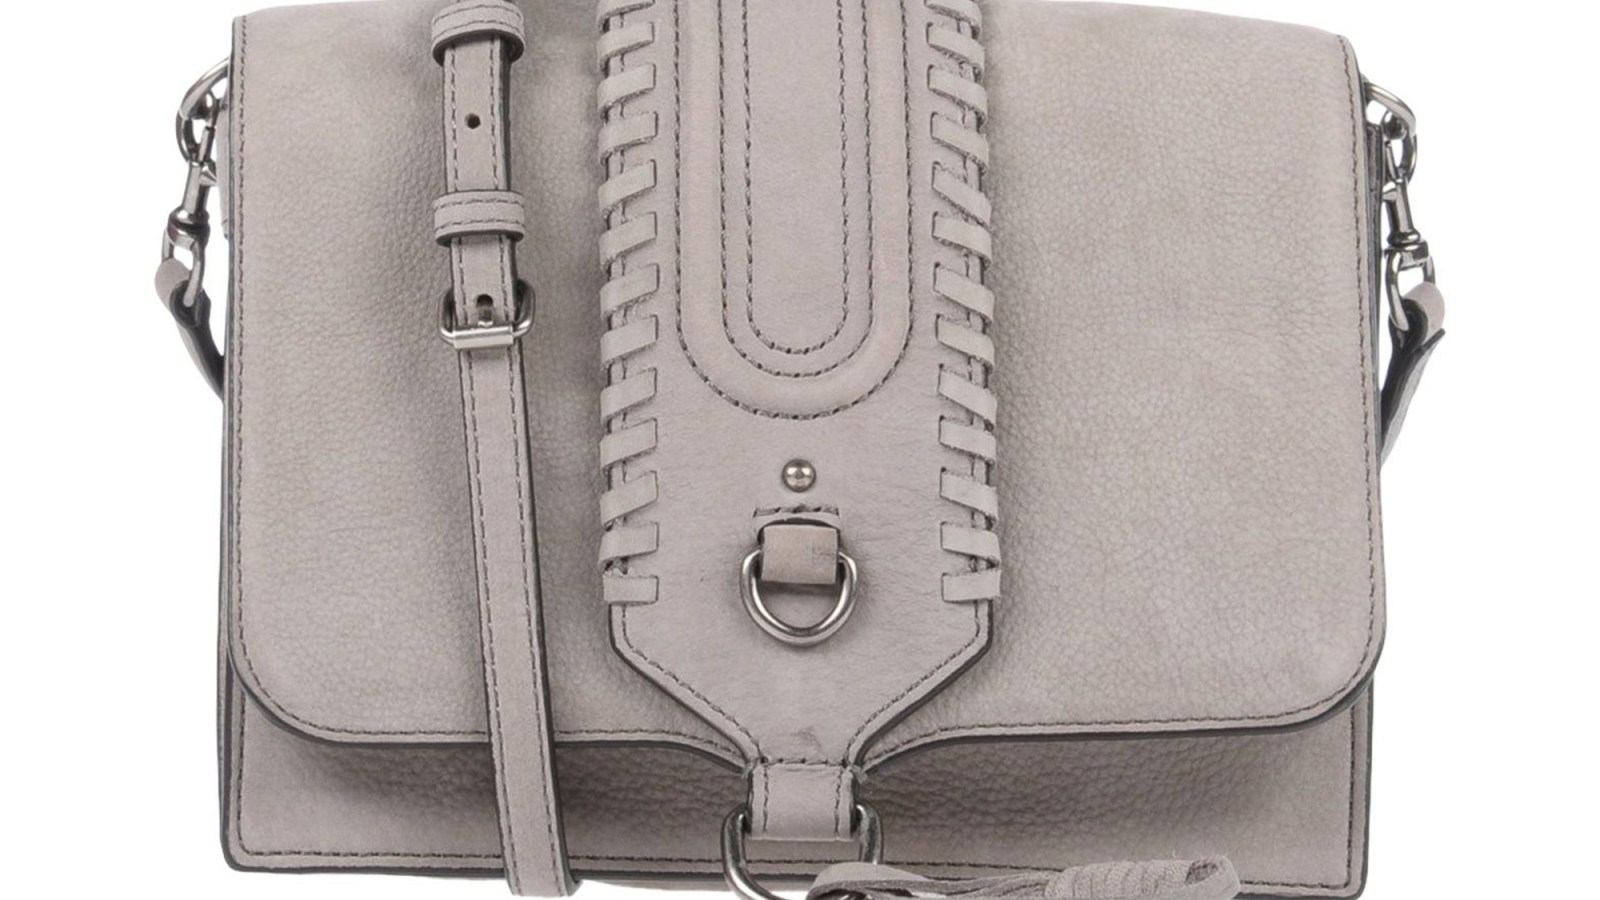 251ac4d15 This Rebecca Minkoff Bag Is Nearly 70% Off in the YOOX Sale